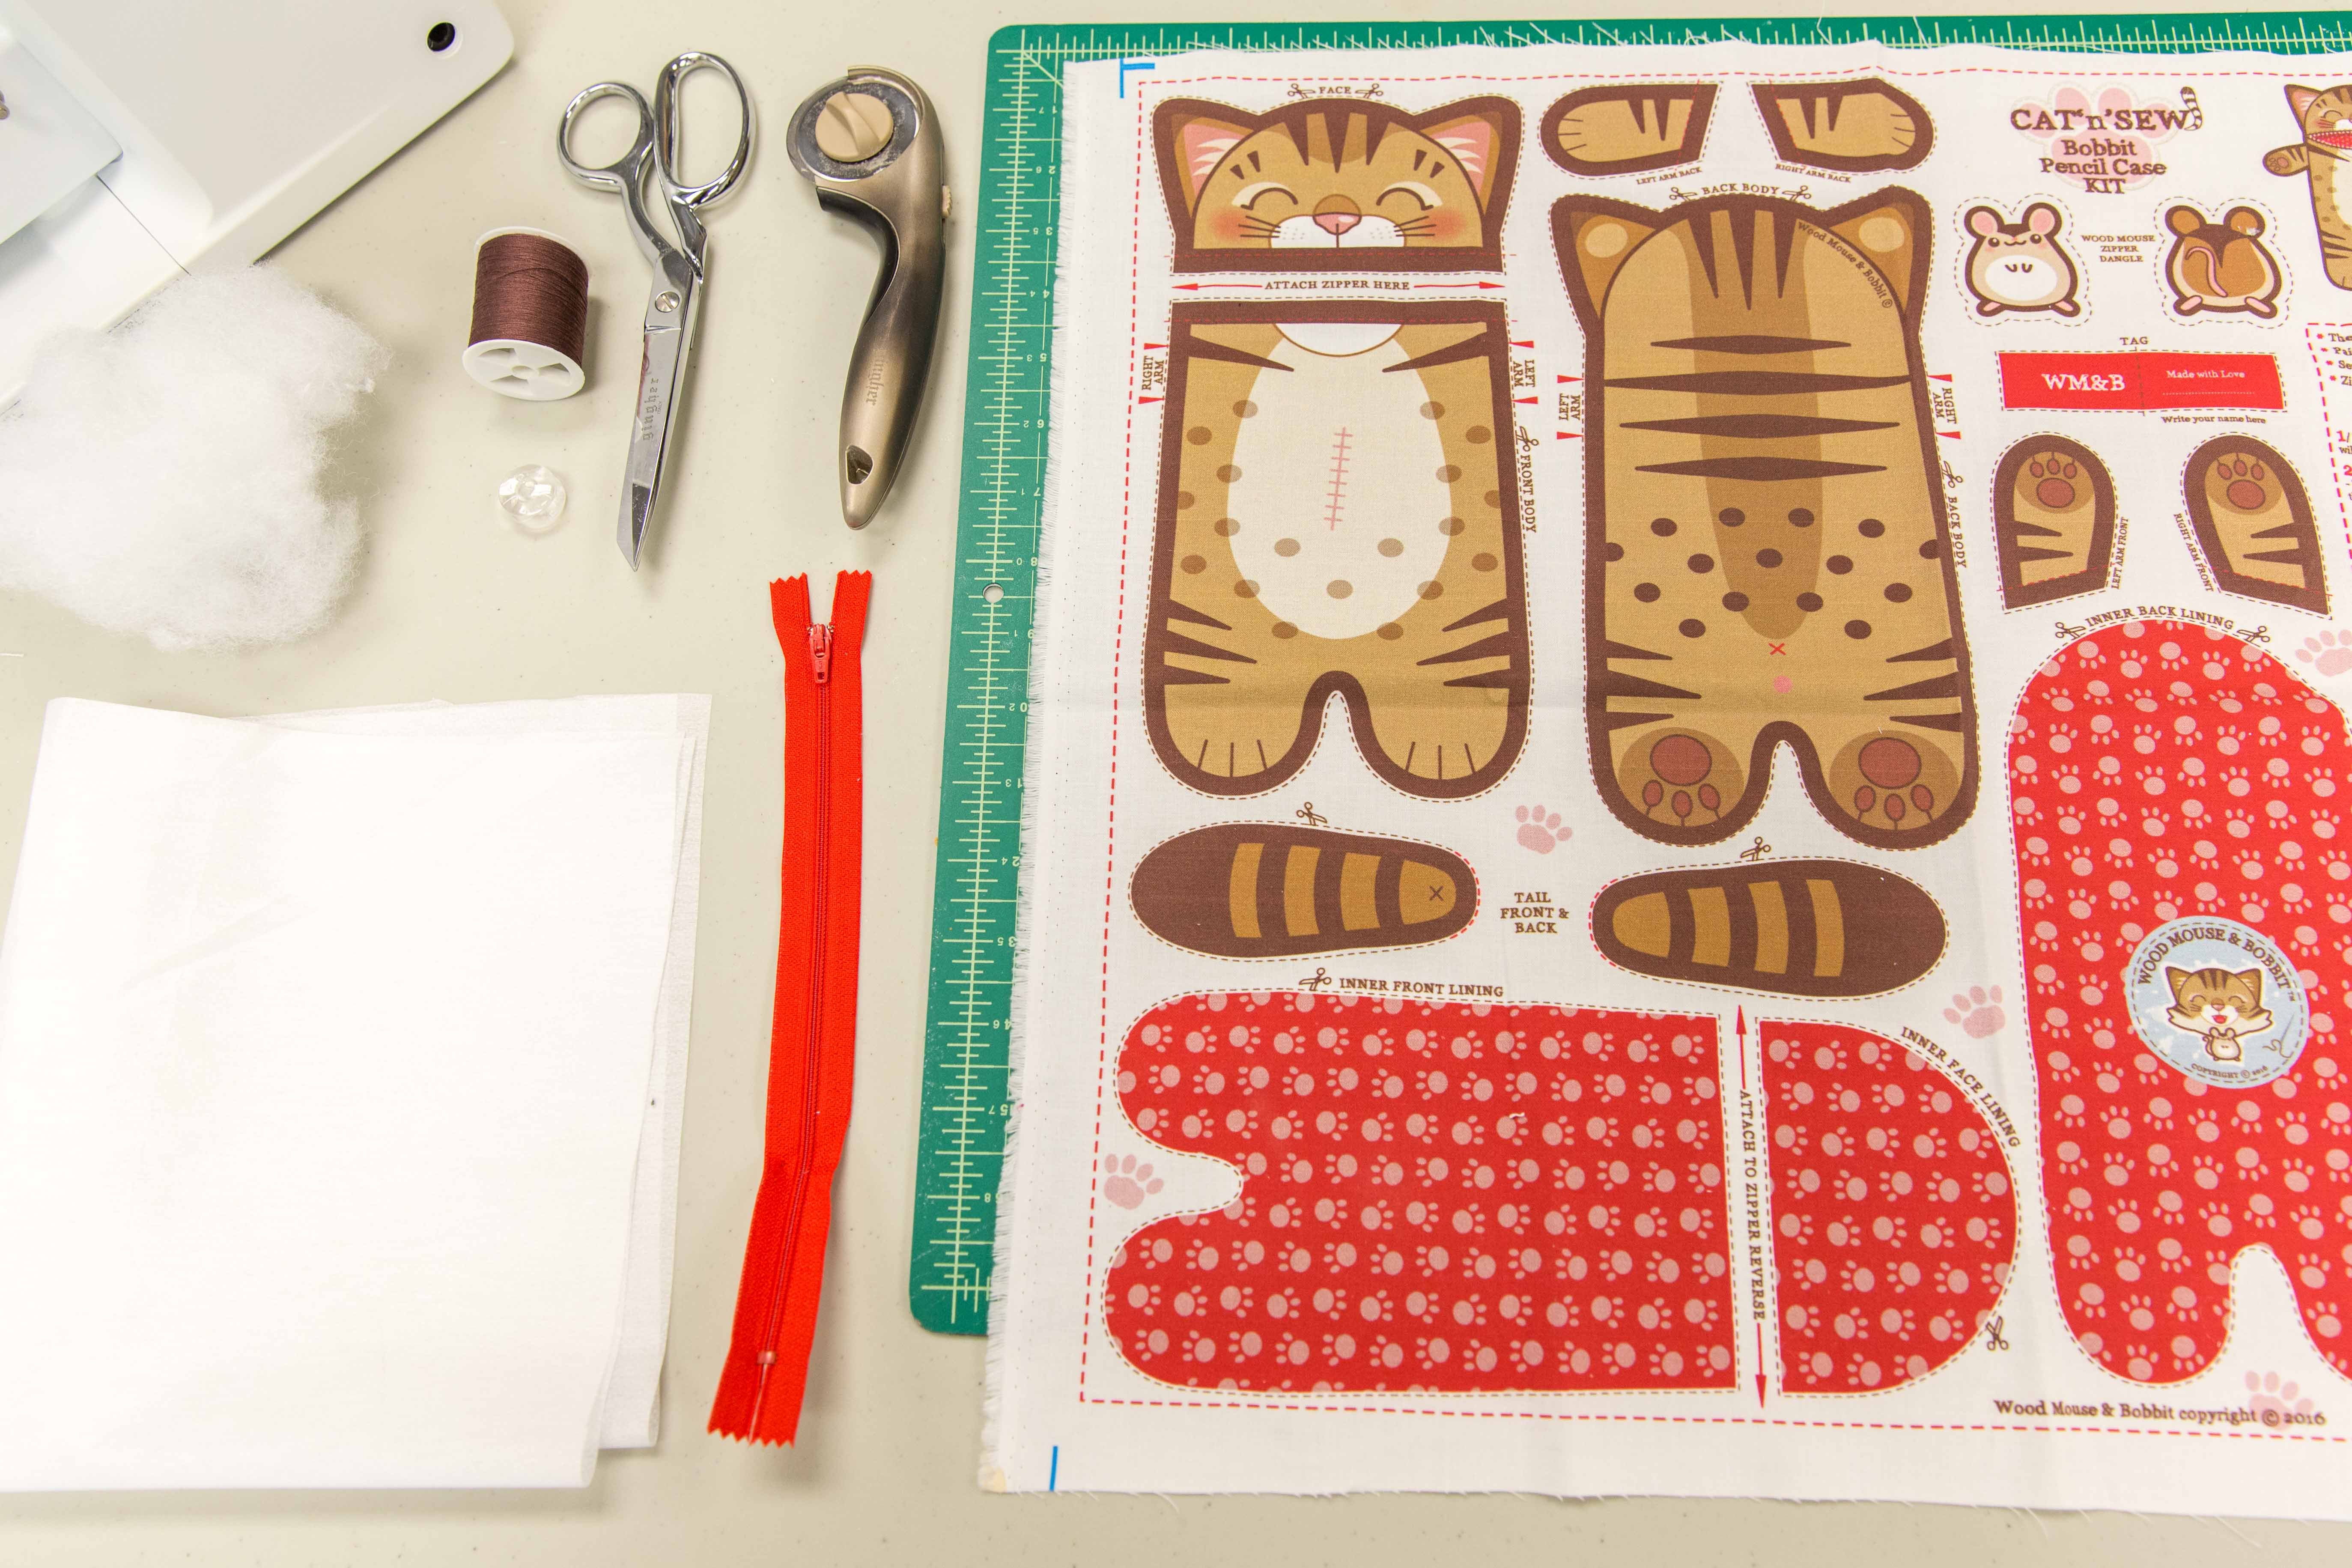 Sew Up the Purrrfect Cat Zipper Pouch | Video Tutorial | Spoonflower Blog